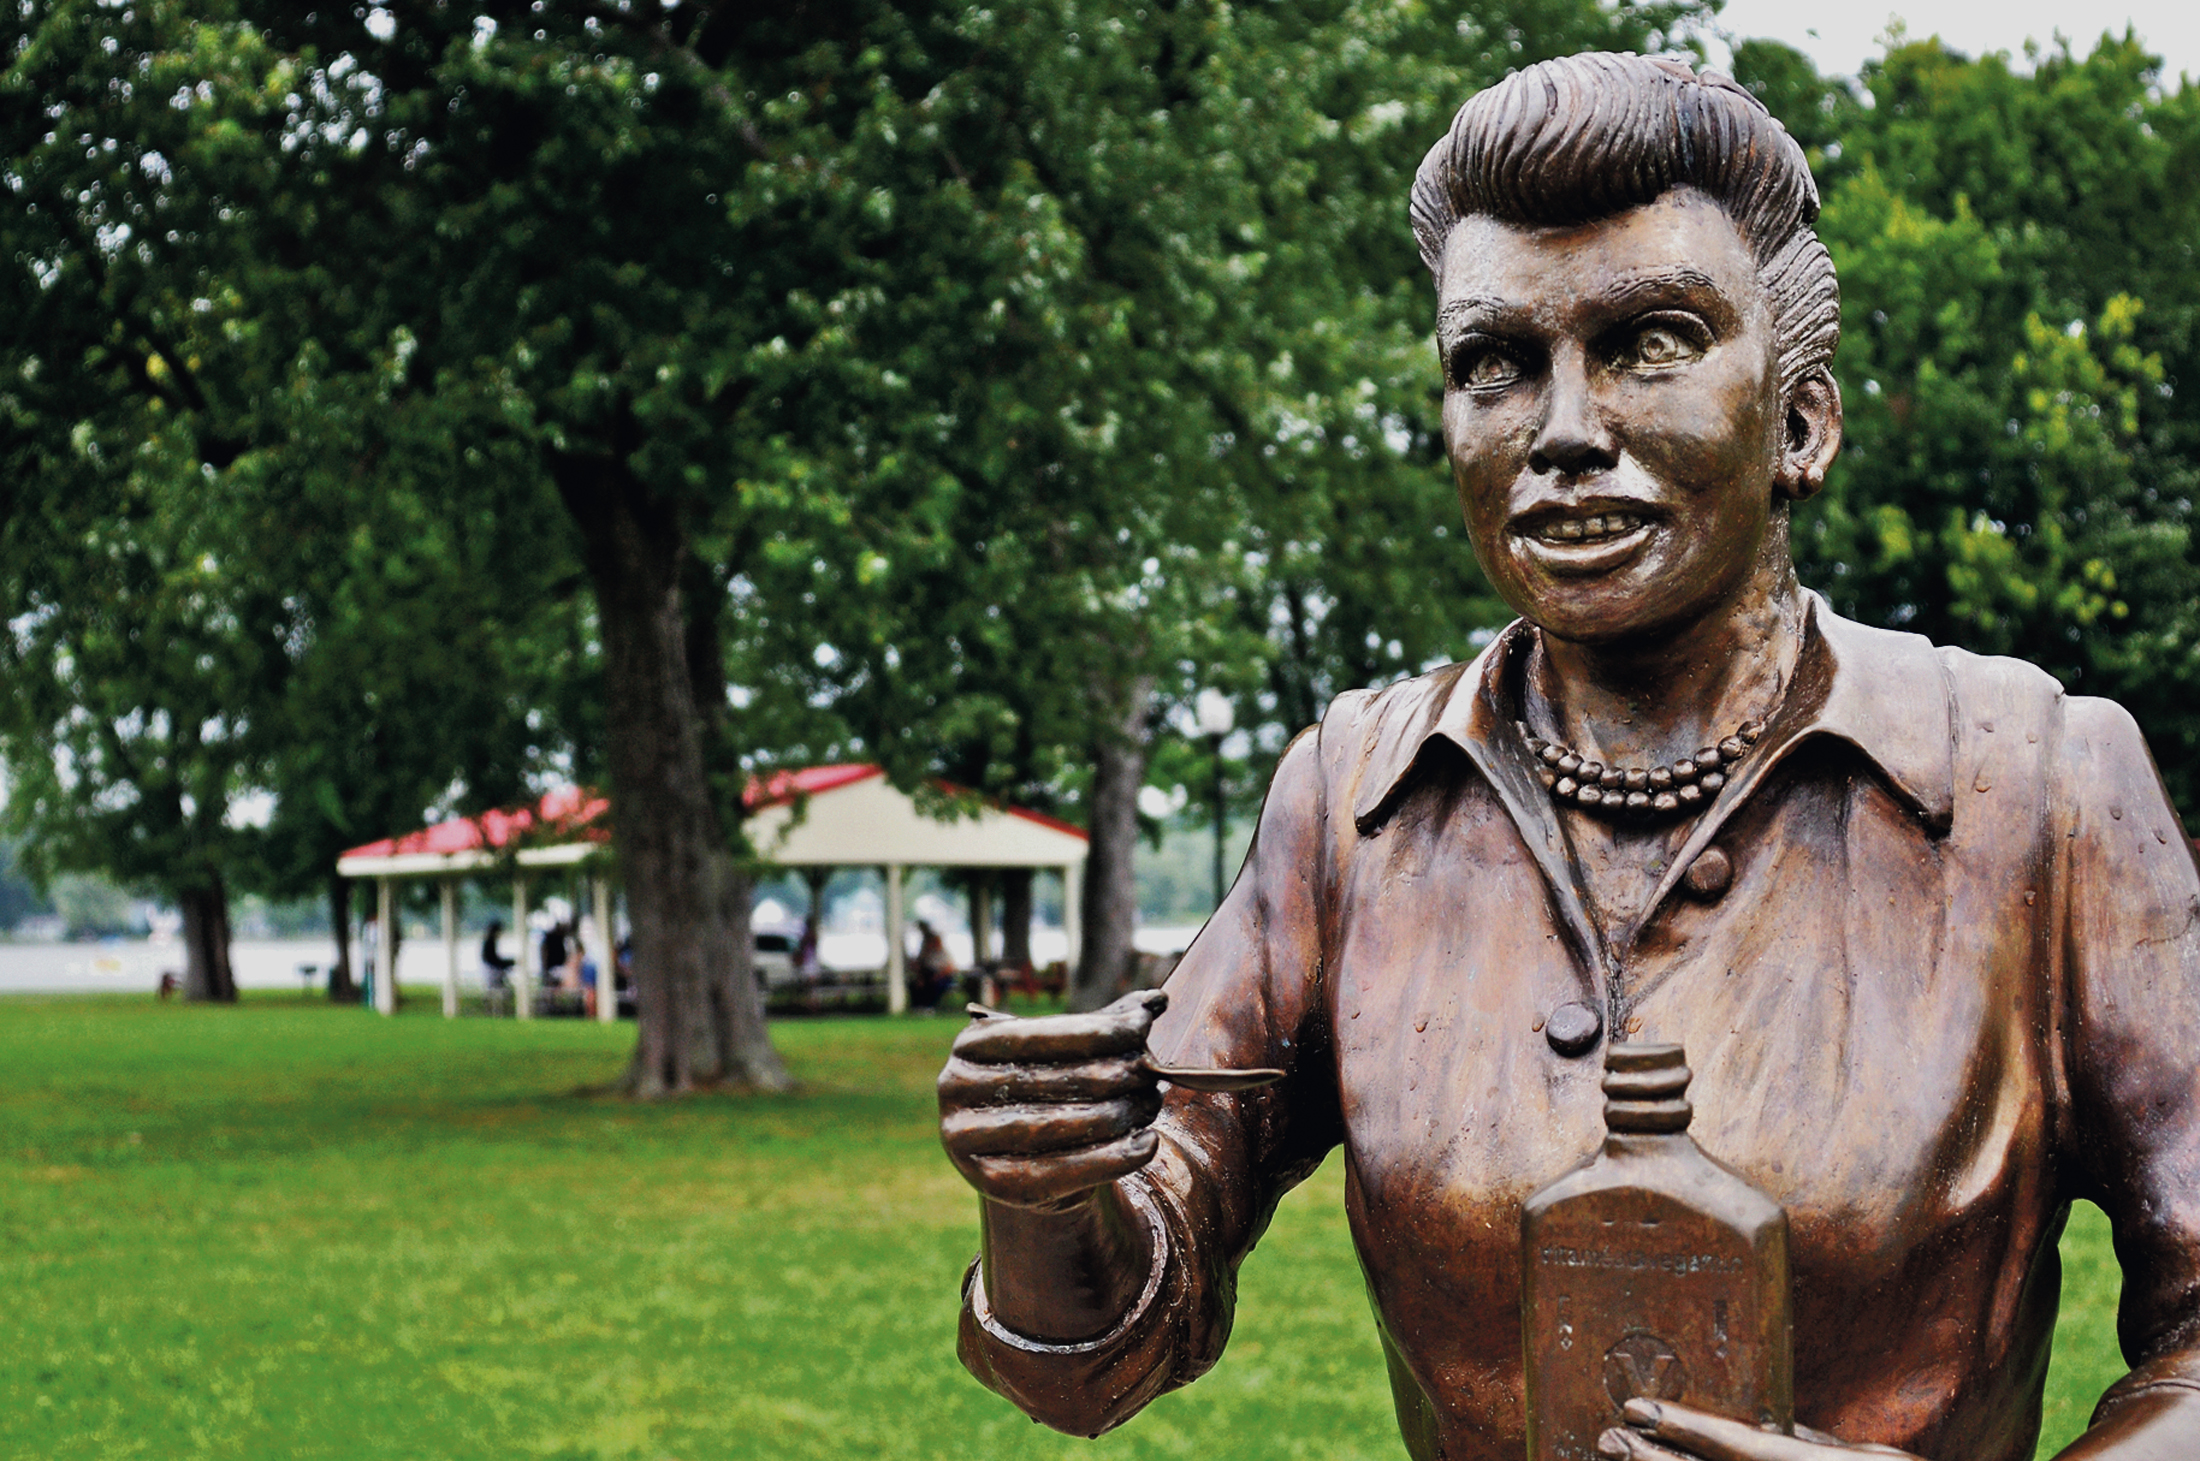 In this Aug. 2012 photo, a bronze sculpture of Lucille Ball is displayed in Lucille Ball Memorial Park in the village of Celoron, N.Y.